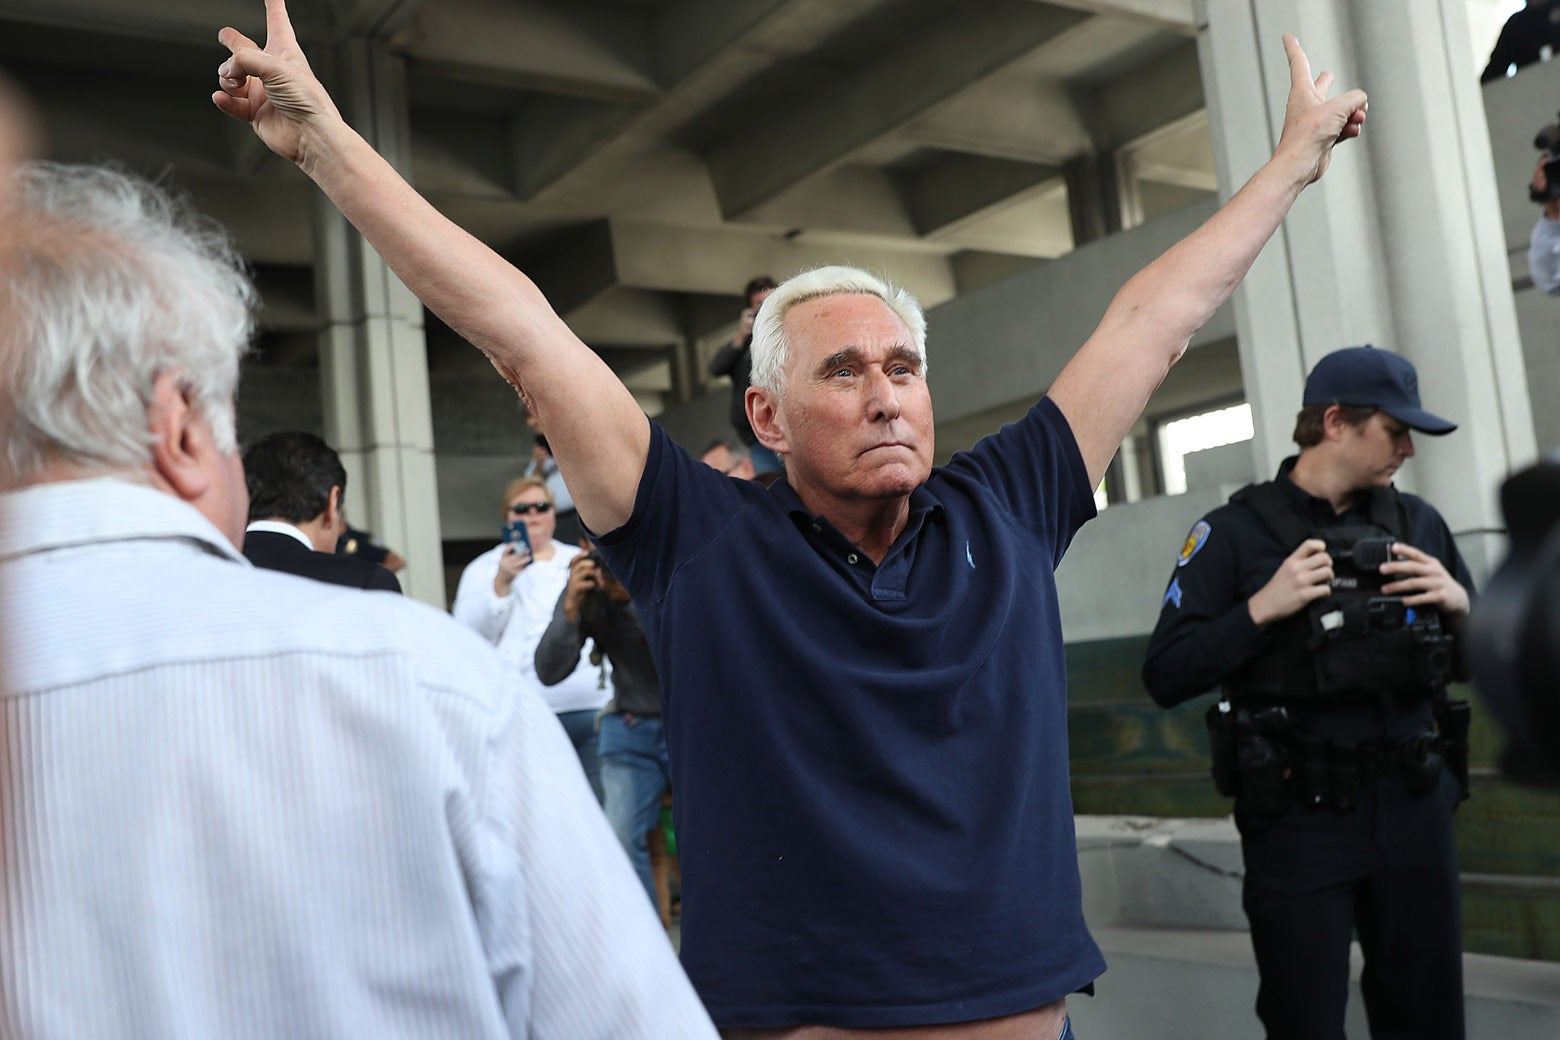 Roger Stone leaves the courthouse with both arms raised in a Nixon salute.